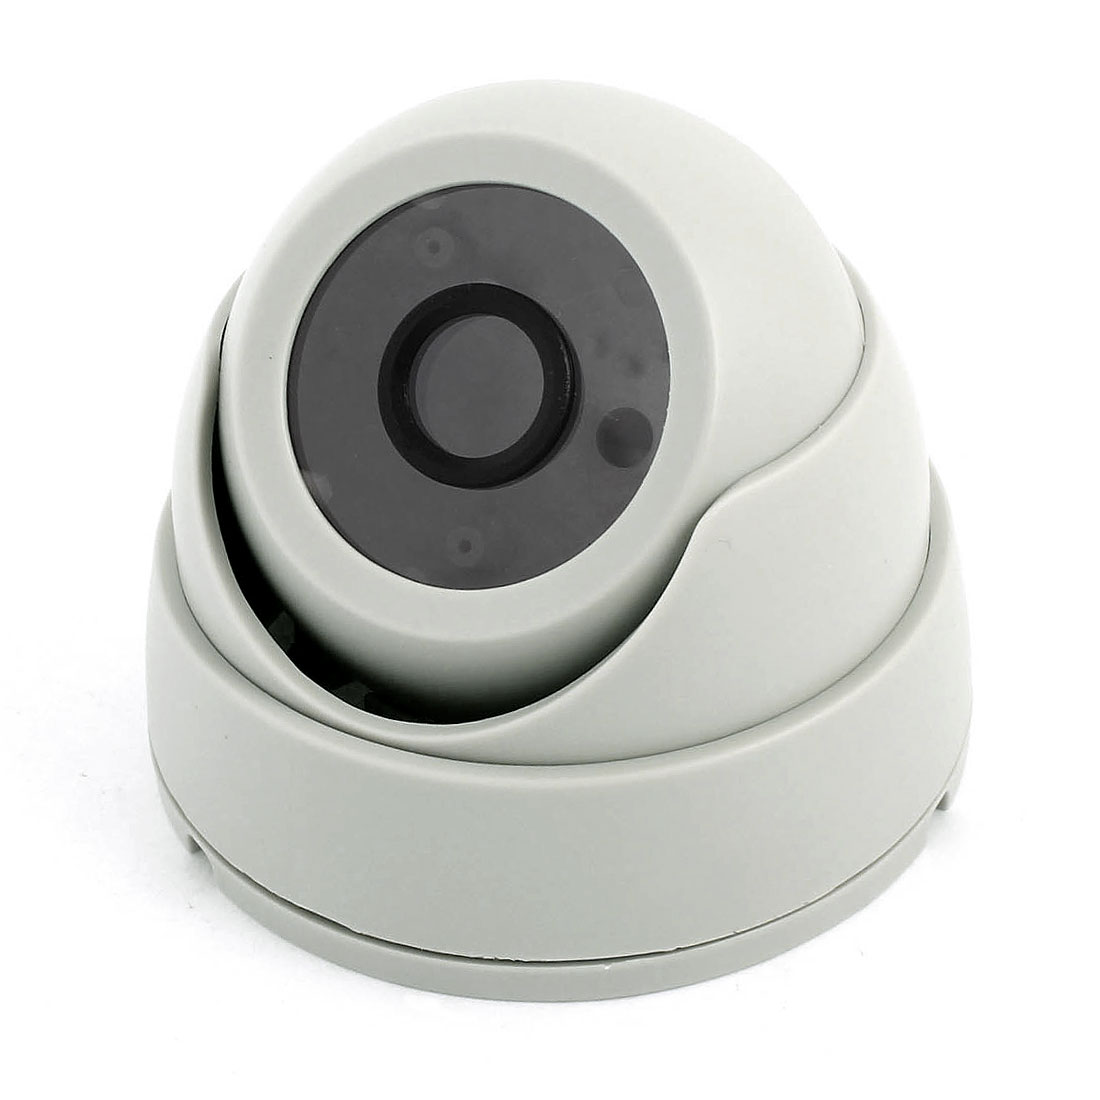 Surveillance Gray Plastic CCTV Dome Camera Housing Case 9.2cm Dia